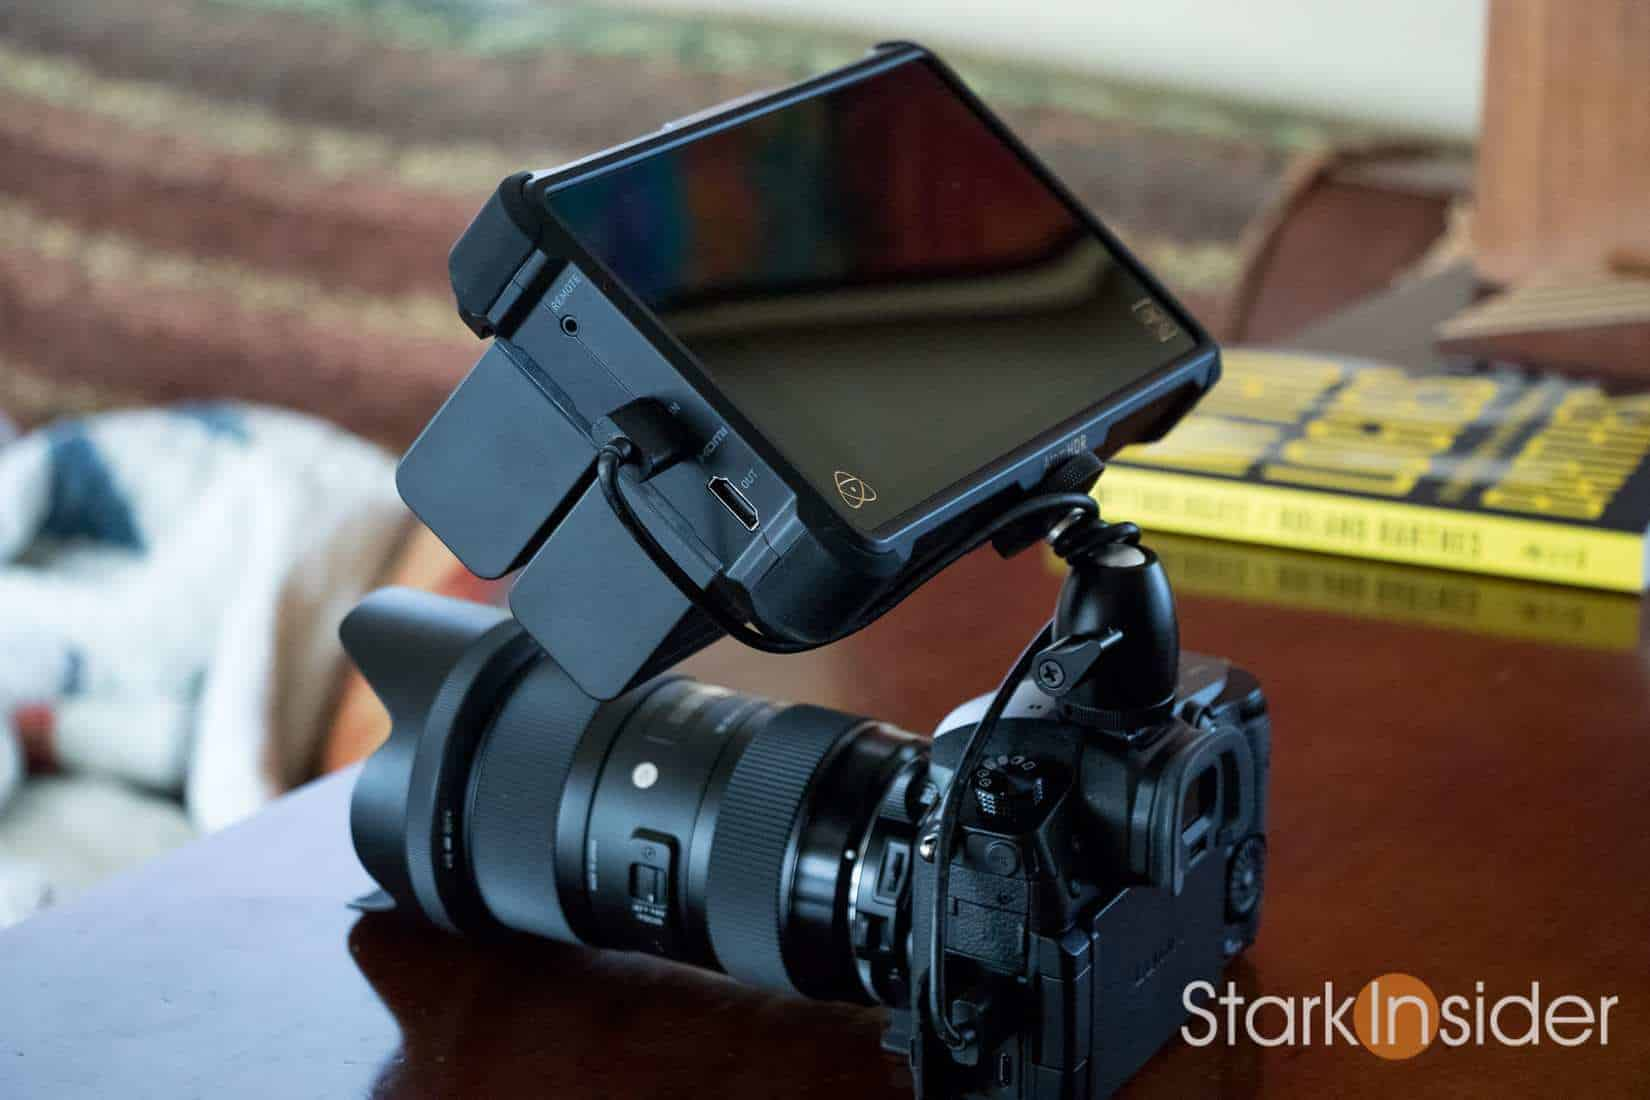 Best Dslr For Video 2017 >> Top 5 Camera Accessories For Dslr Video Shooters Stark Insider